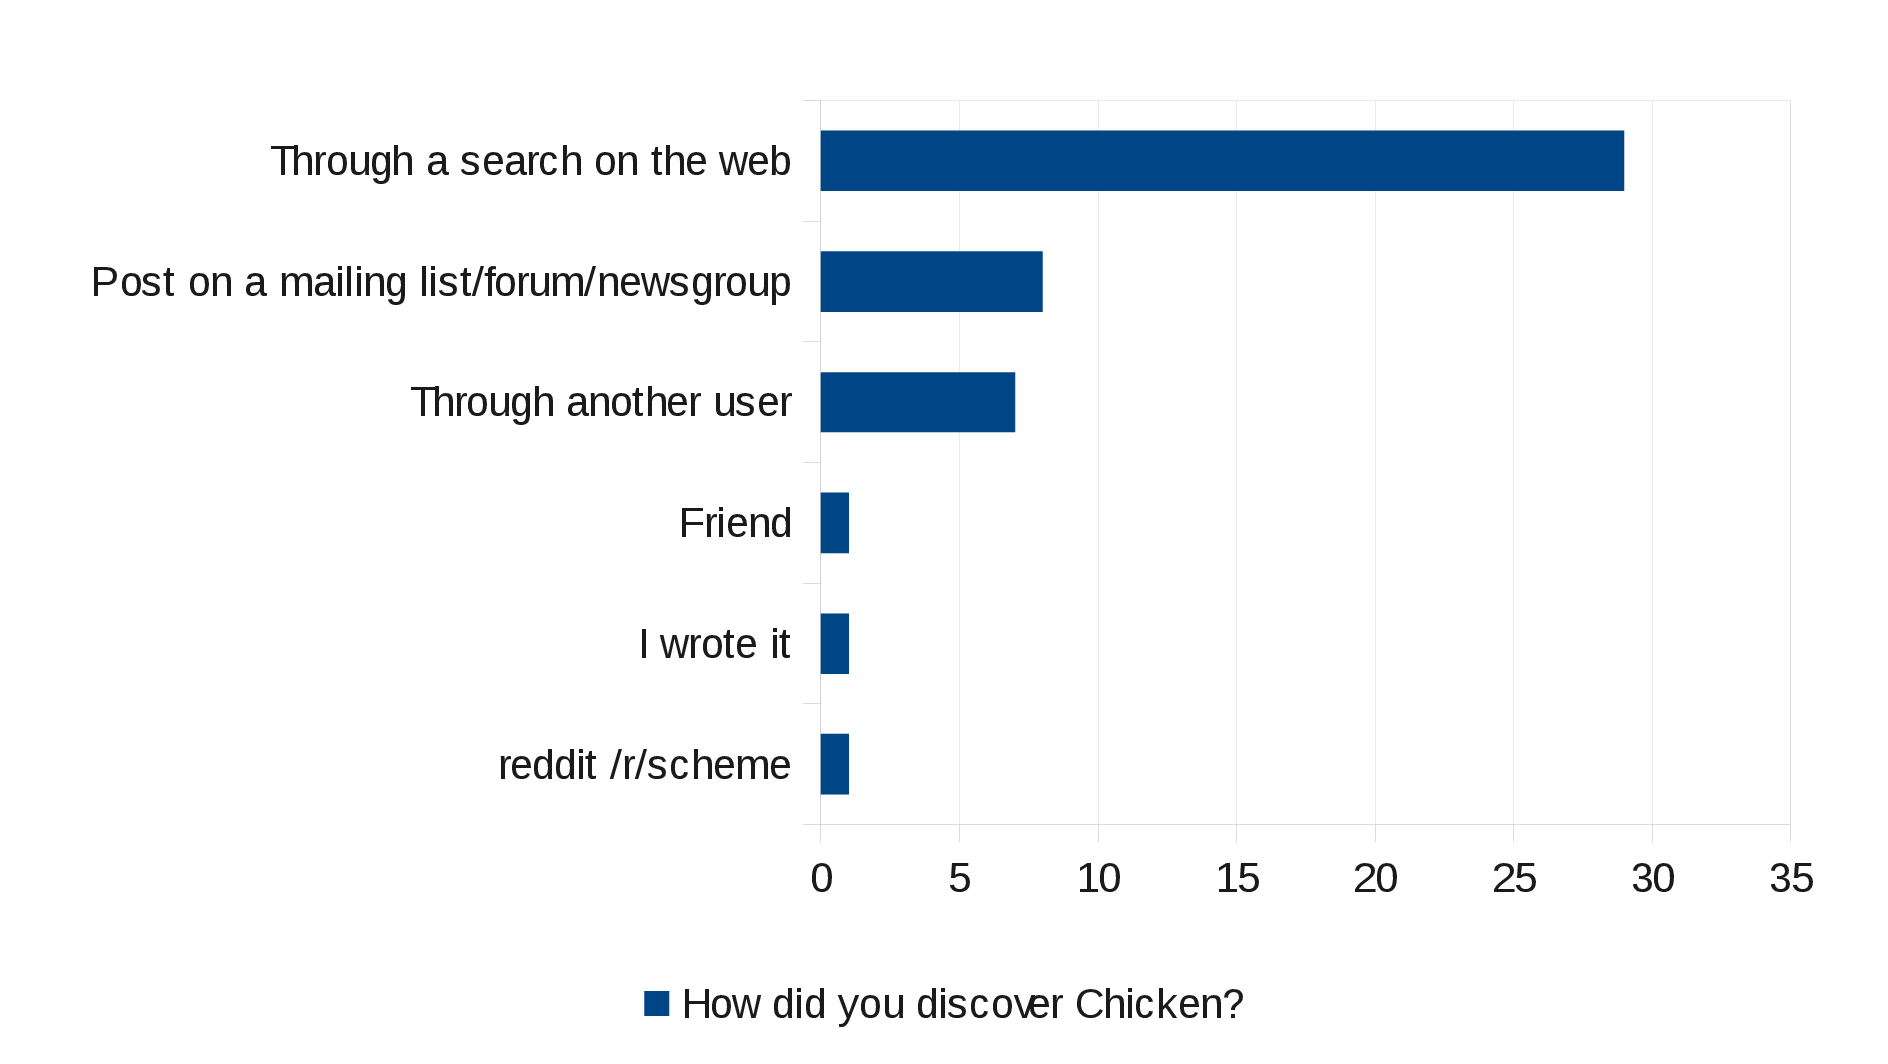 How did you discover CHICKEN?